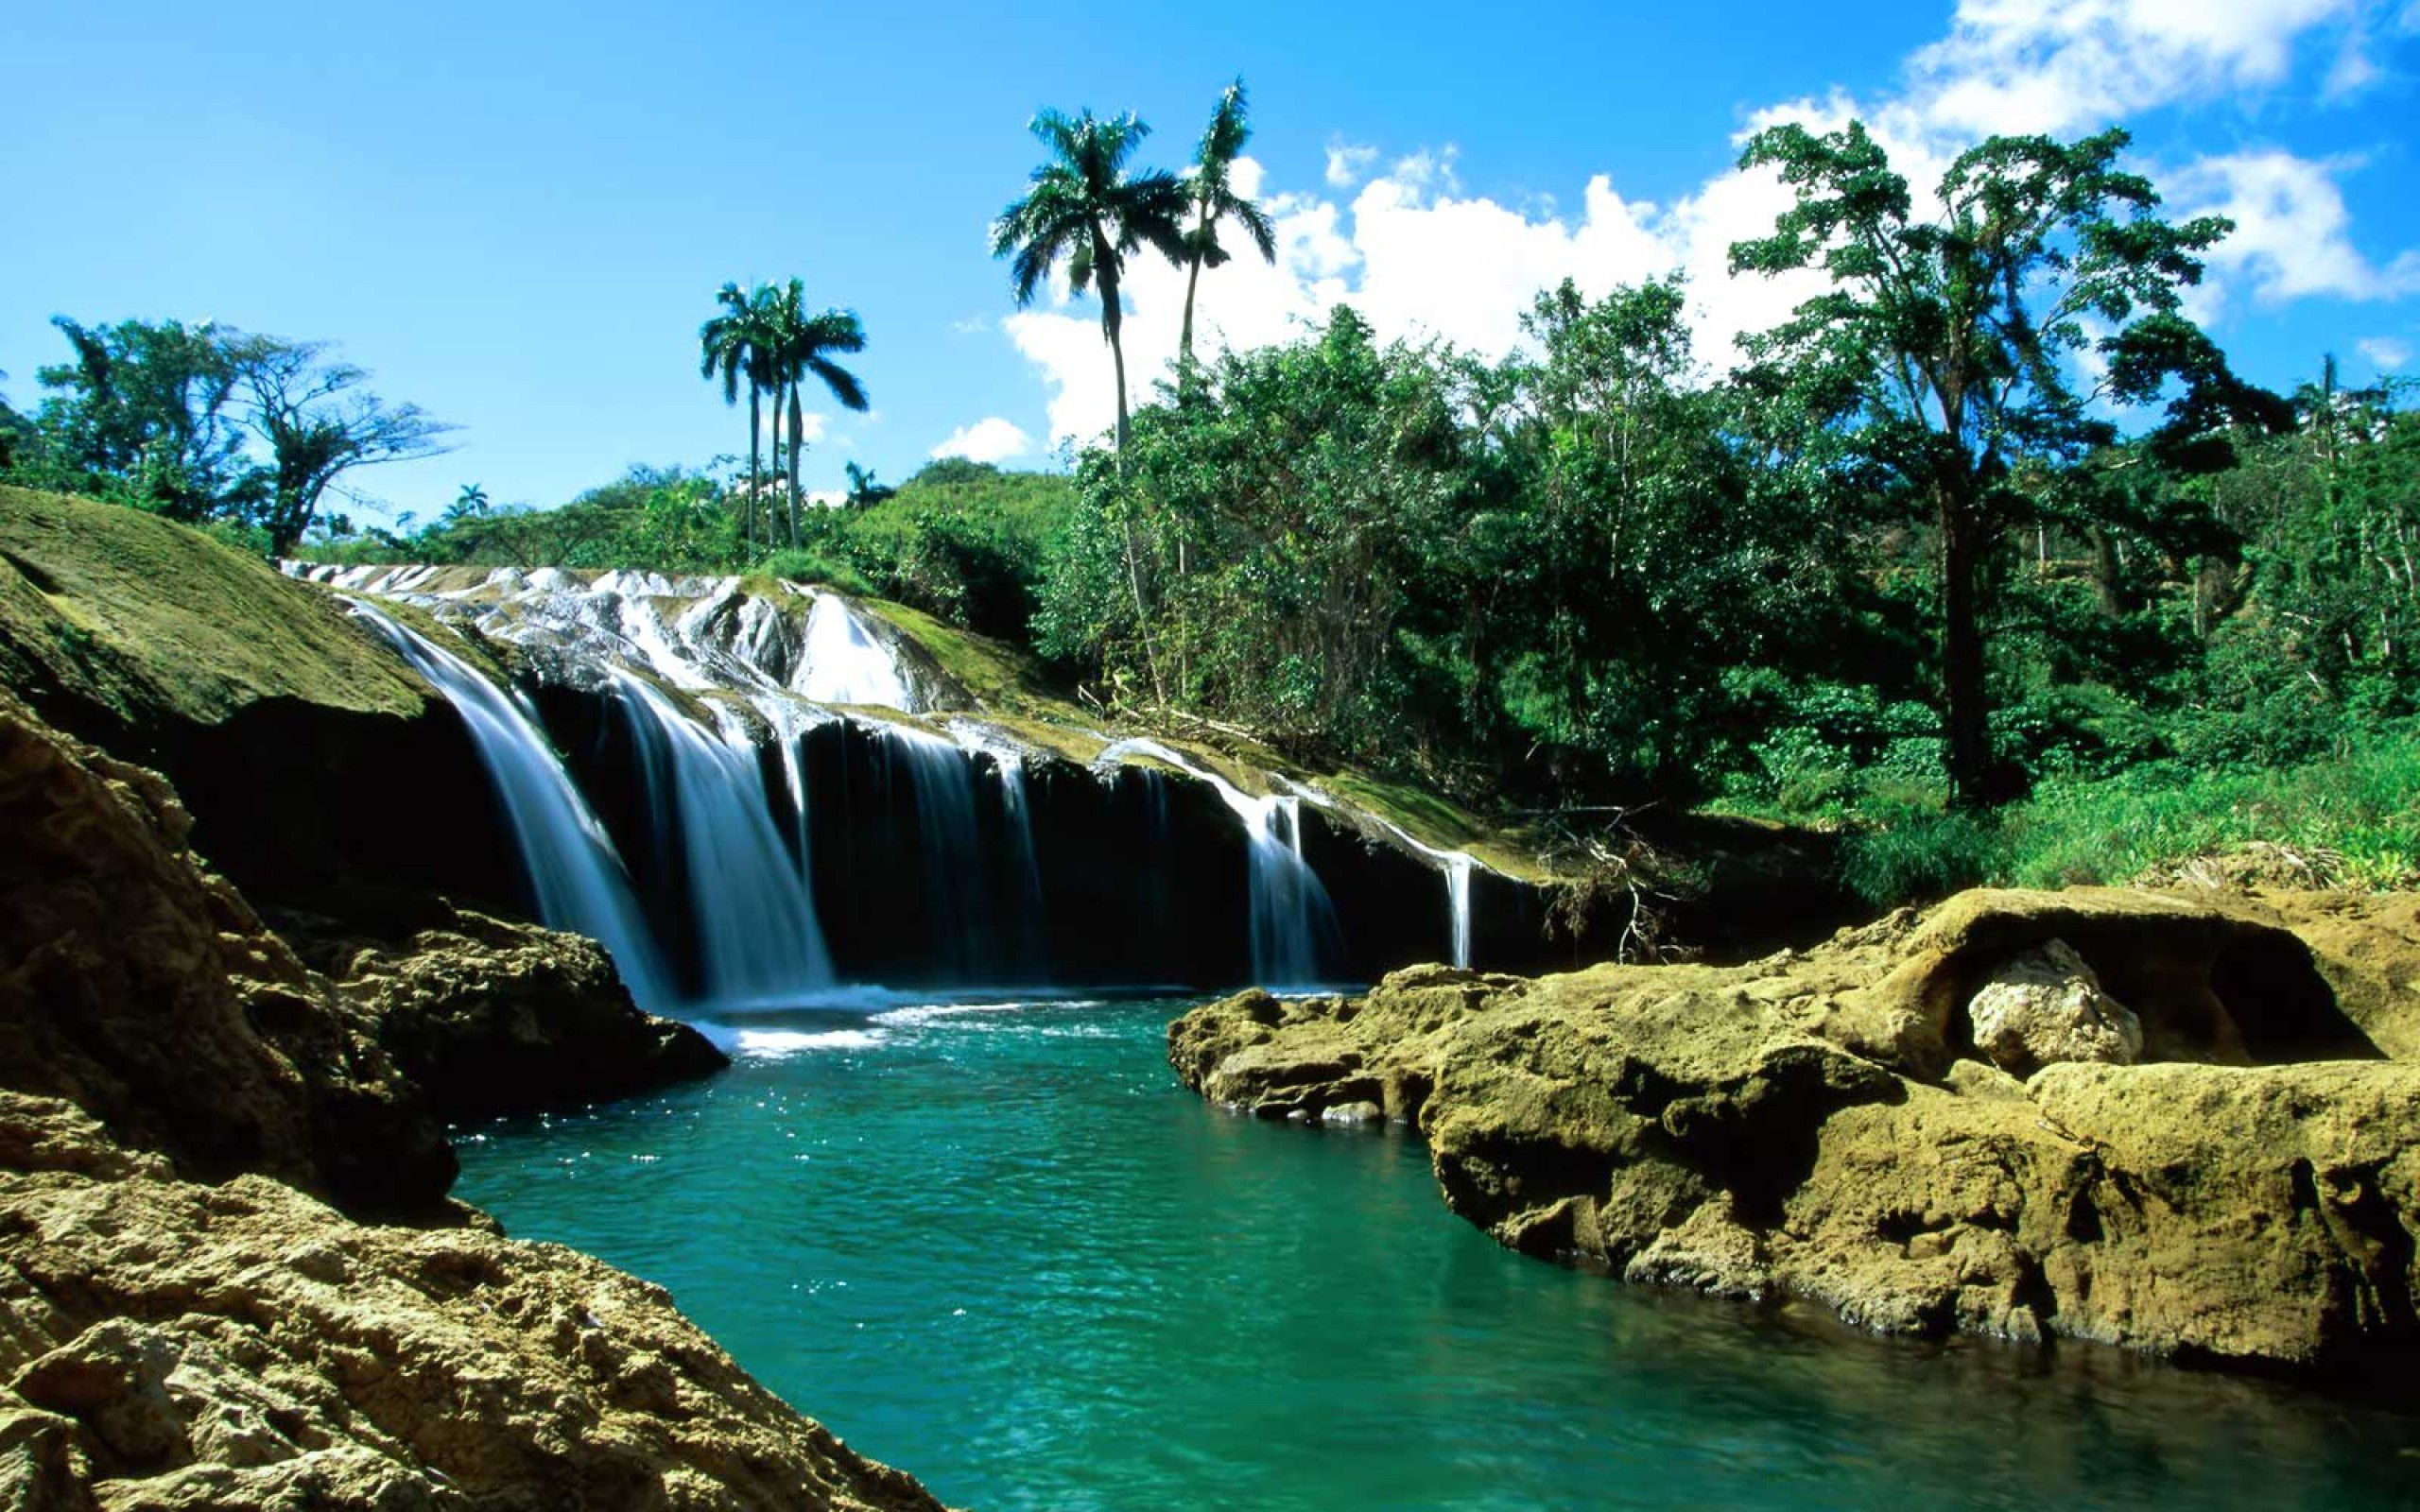 Amazing Pc Backgrounds Nature Background Photos Download HD 2560x1600